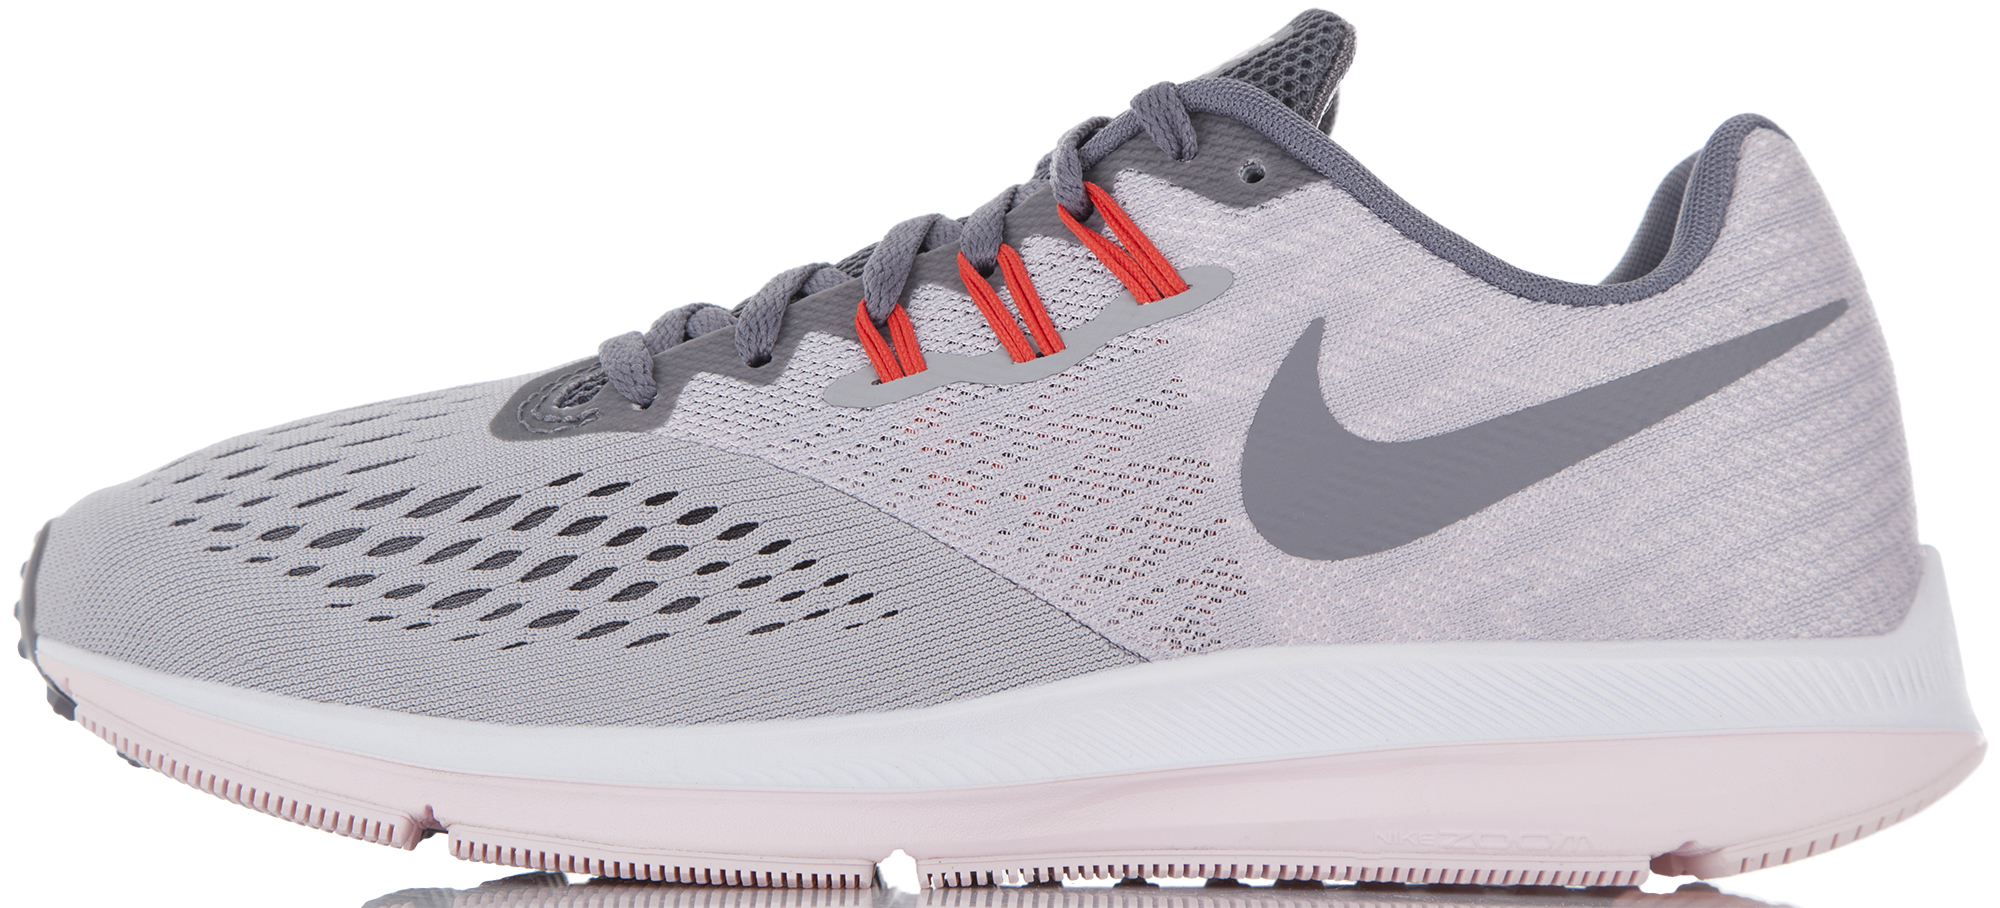 Nike Кроссовки женские Nike Air Zoom Winflo 4